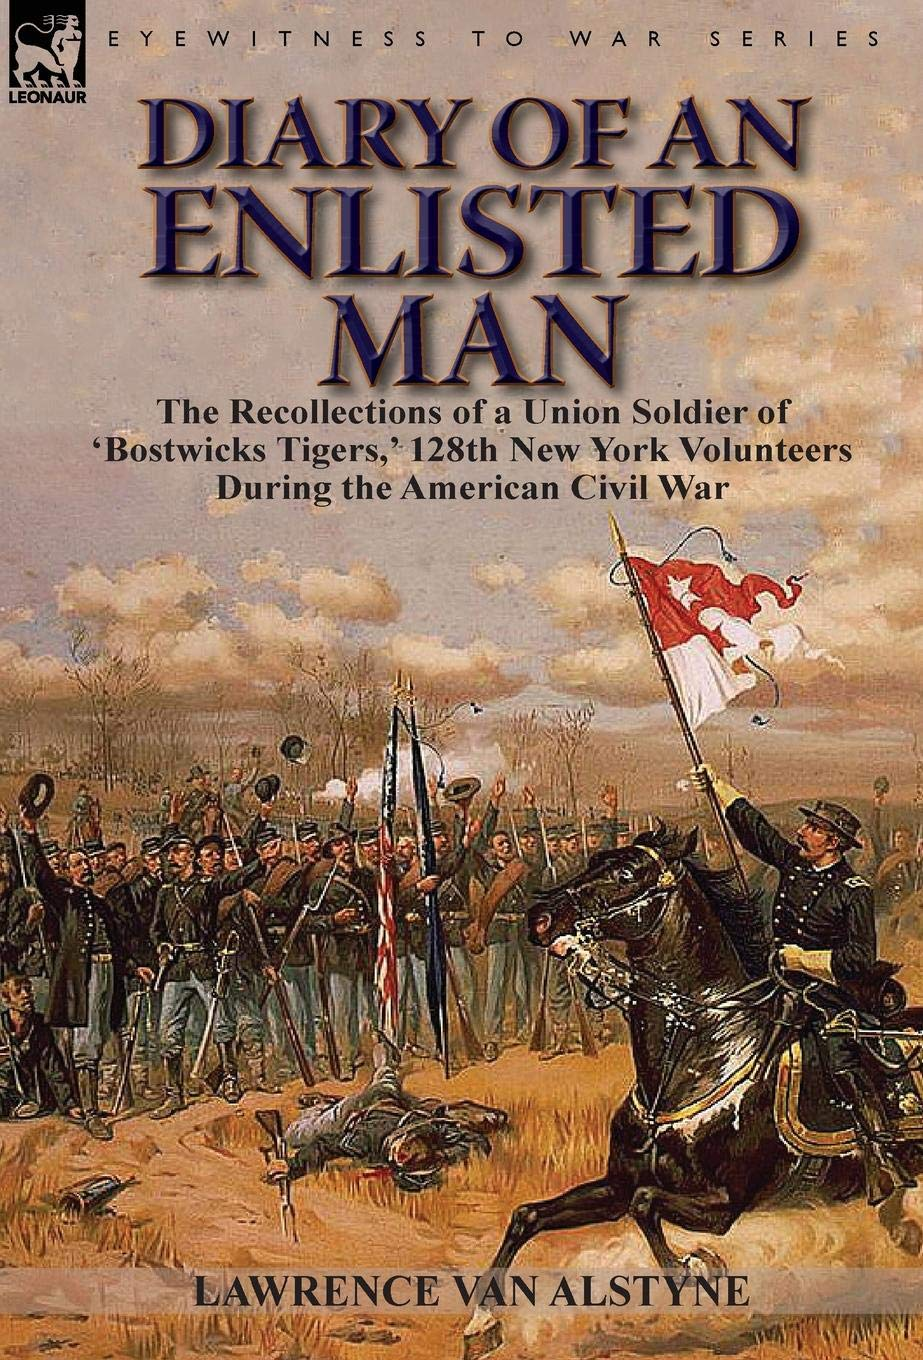 Diary of an Enlisted Man: the Recollections of a Union Soldier of 'Bostwicks Tigers,' 128th New York Volunteers During the American Civil War PDF